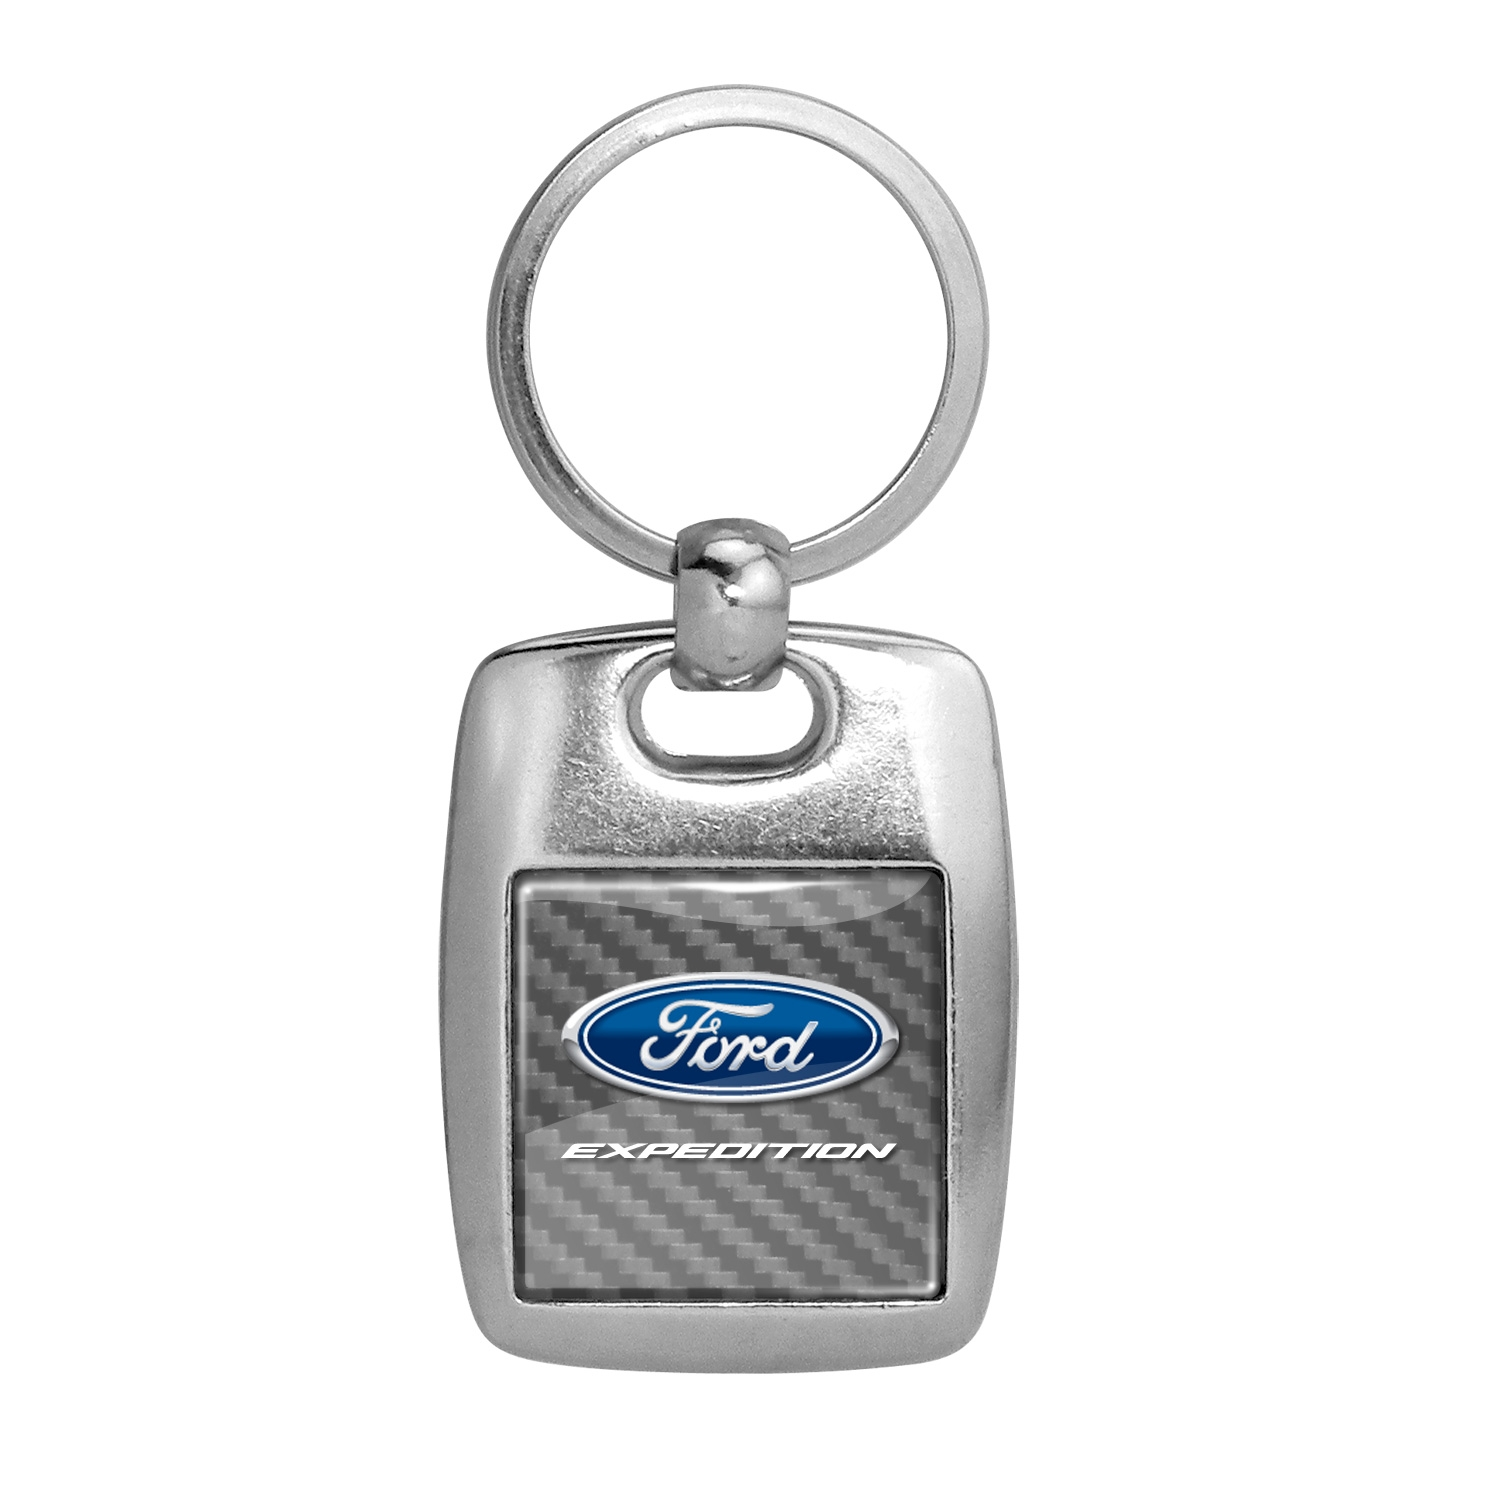 Ford Expedition Silver Carbon Fiber Backing Brush Metal Key Chain